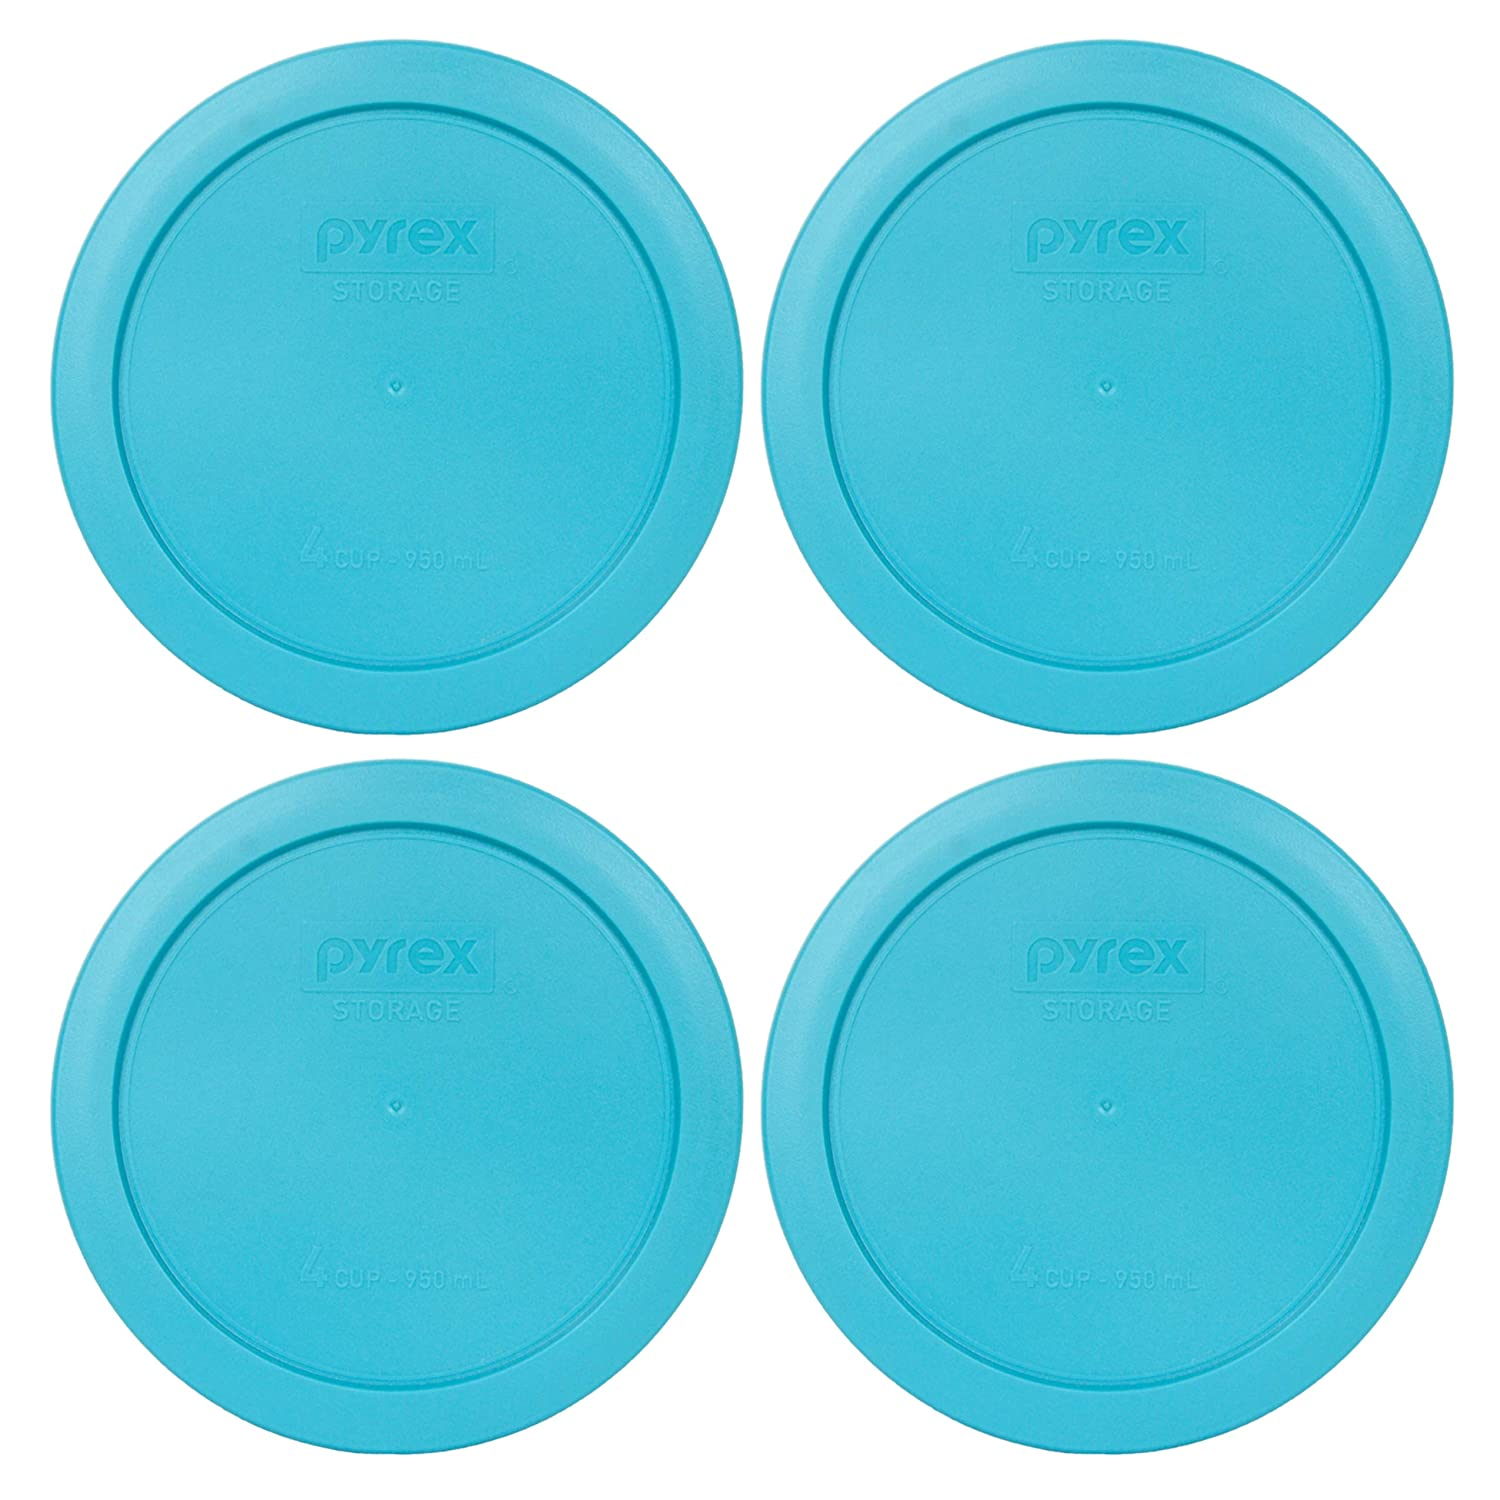 Pyrex 7201-PC 4 Cup Surf Blue Round Plastic Food Storage Lid - 4 Pack